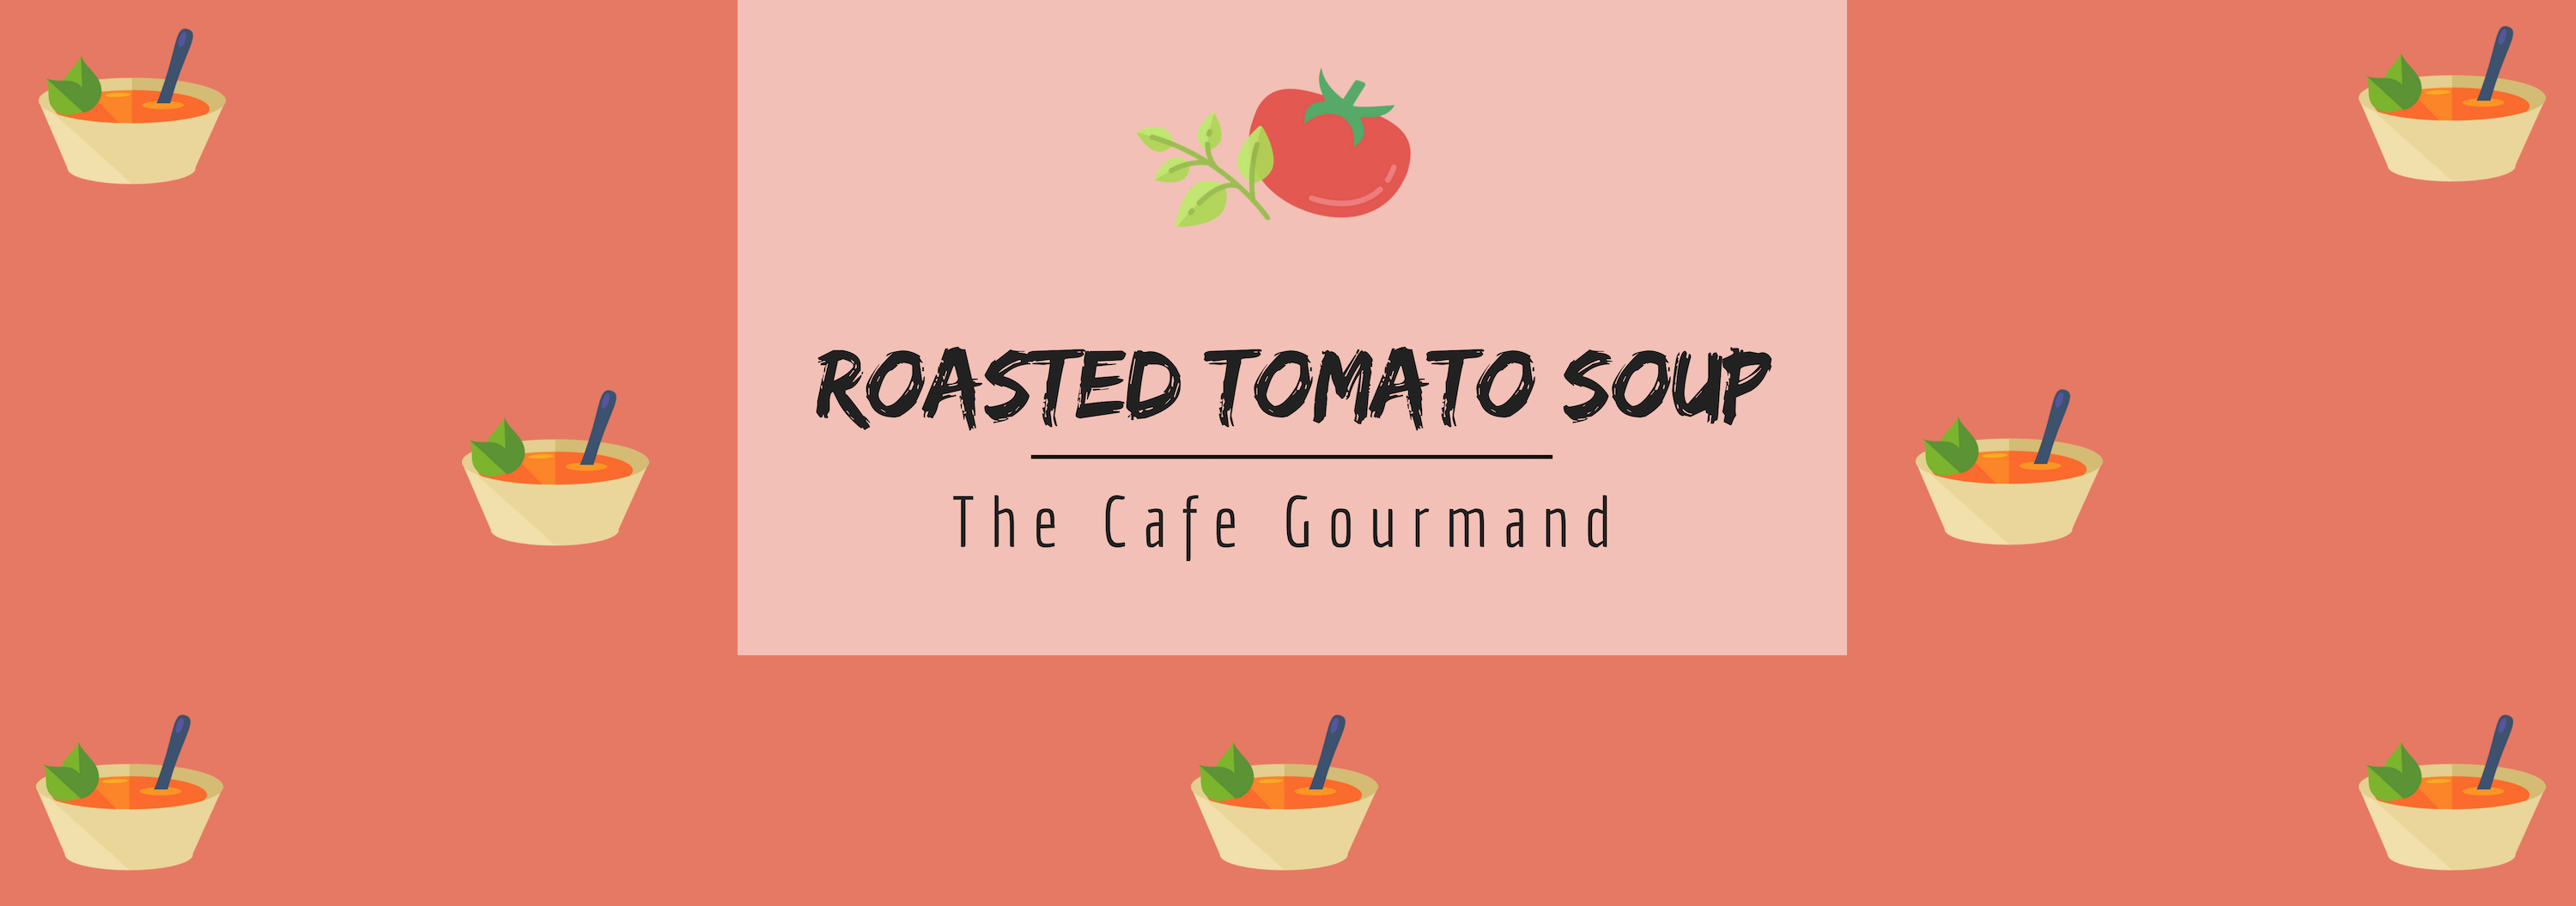 Roasted Tomato Soup - The Cafe Gourmand